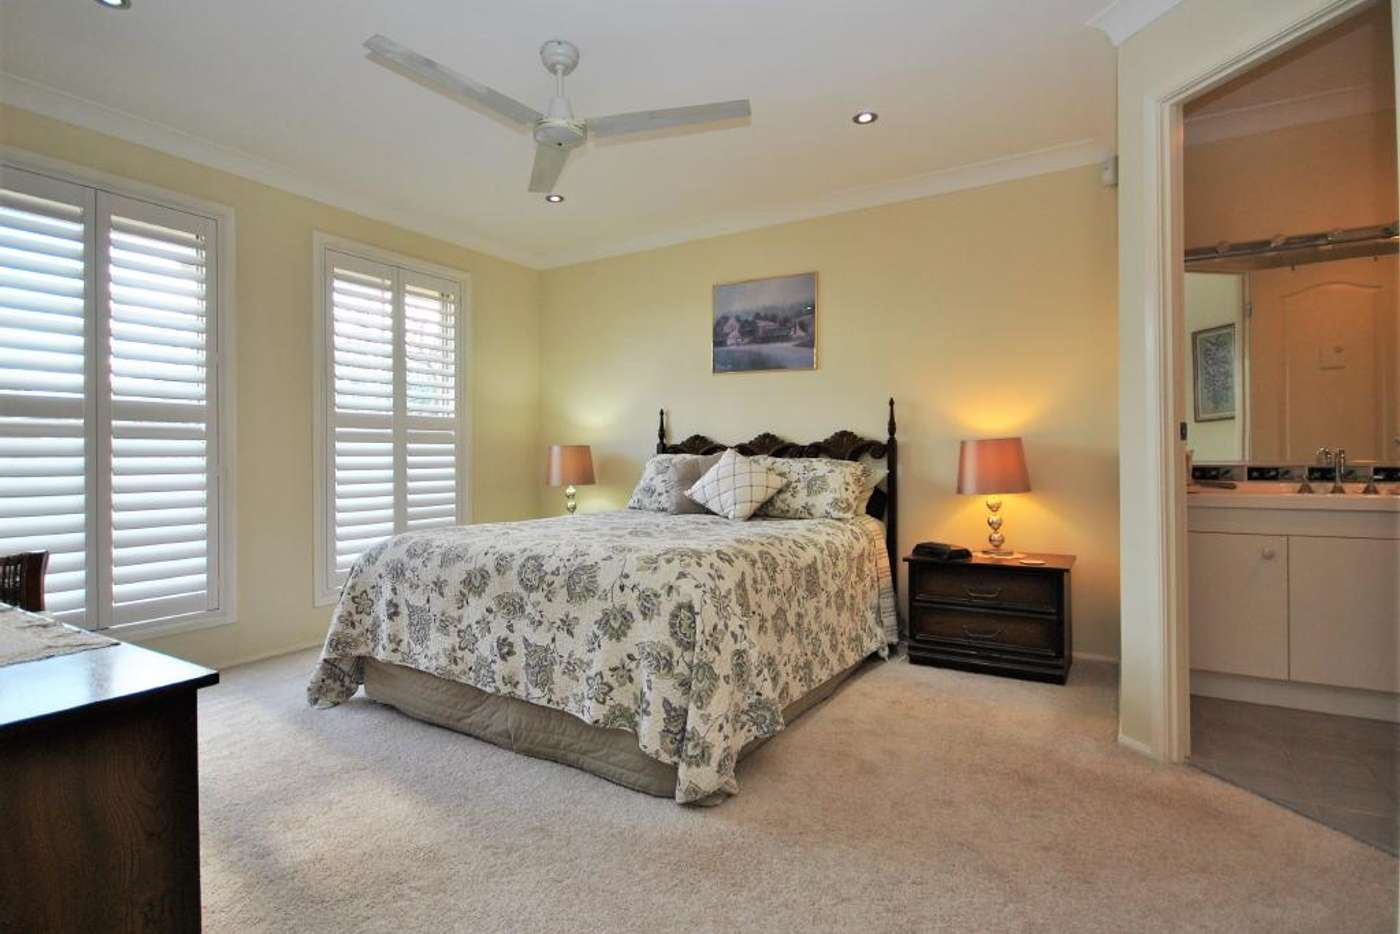 Fifth view of Homely house listing, 3 Tradewinds Avenue, Summerland Point NSW 2259